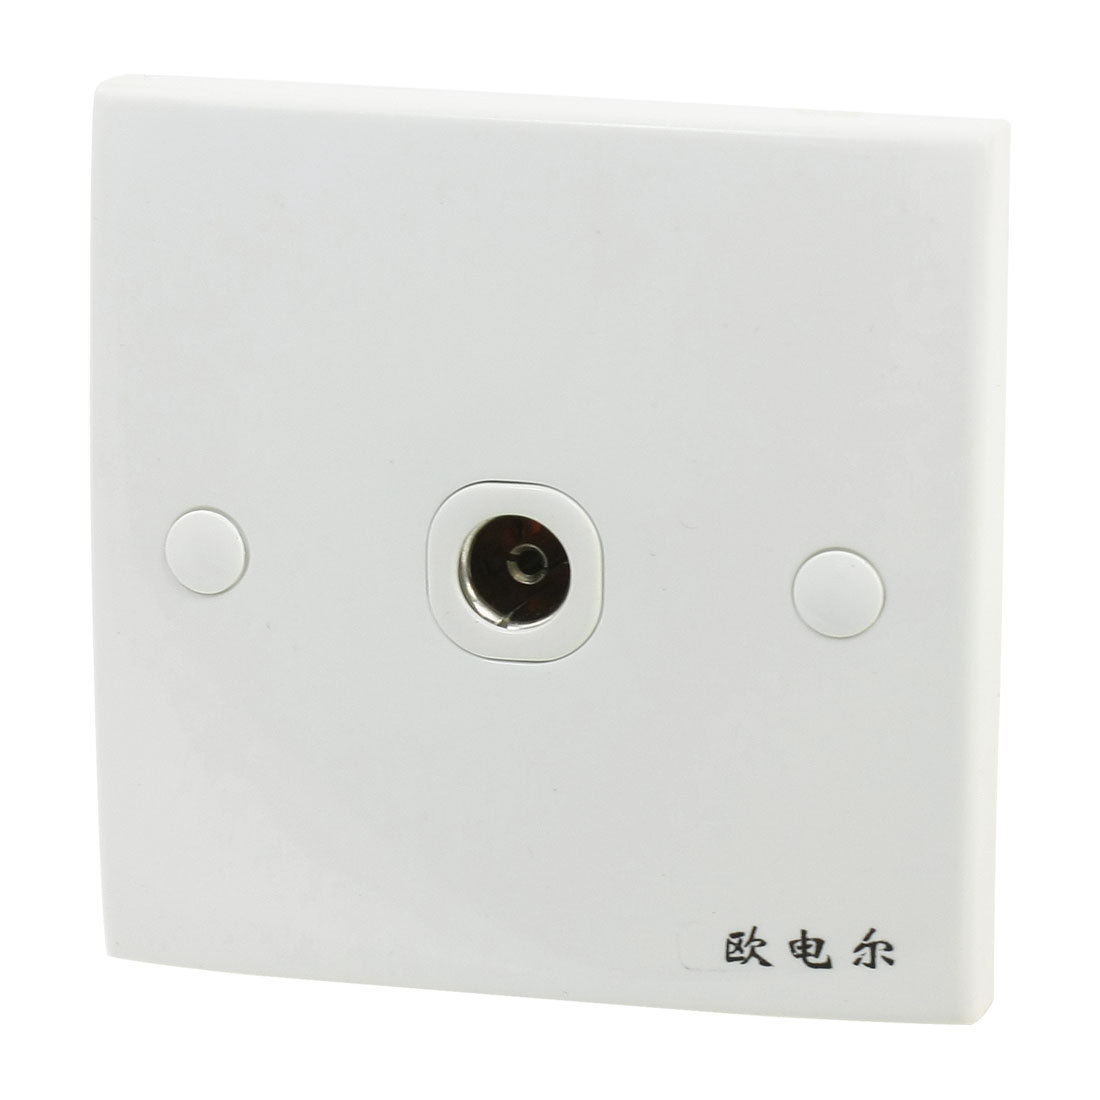 Square PAL Female Jack TV Aerial Antenna One Outlet Socket Wall Plate